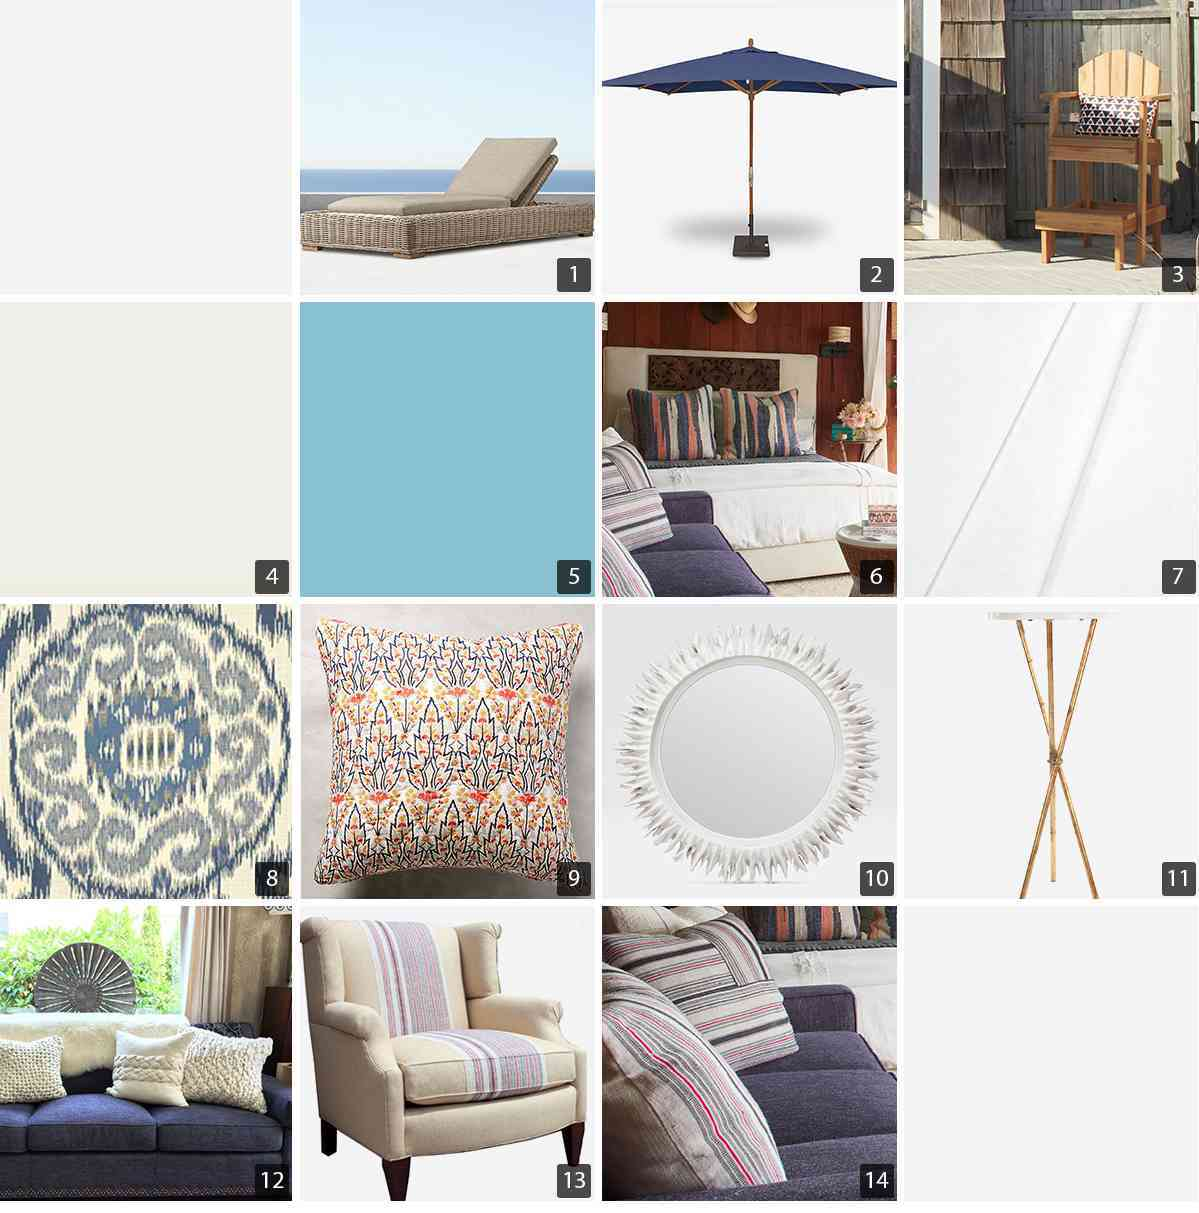 Collage of home products including lounge furniture, queen bedding, and decor photo